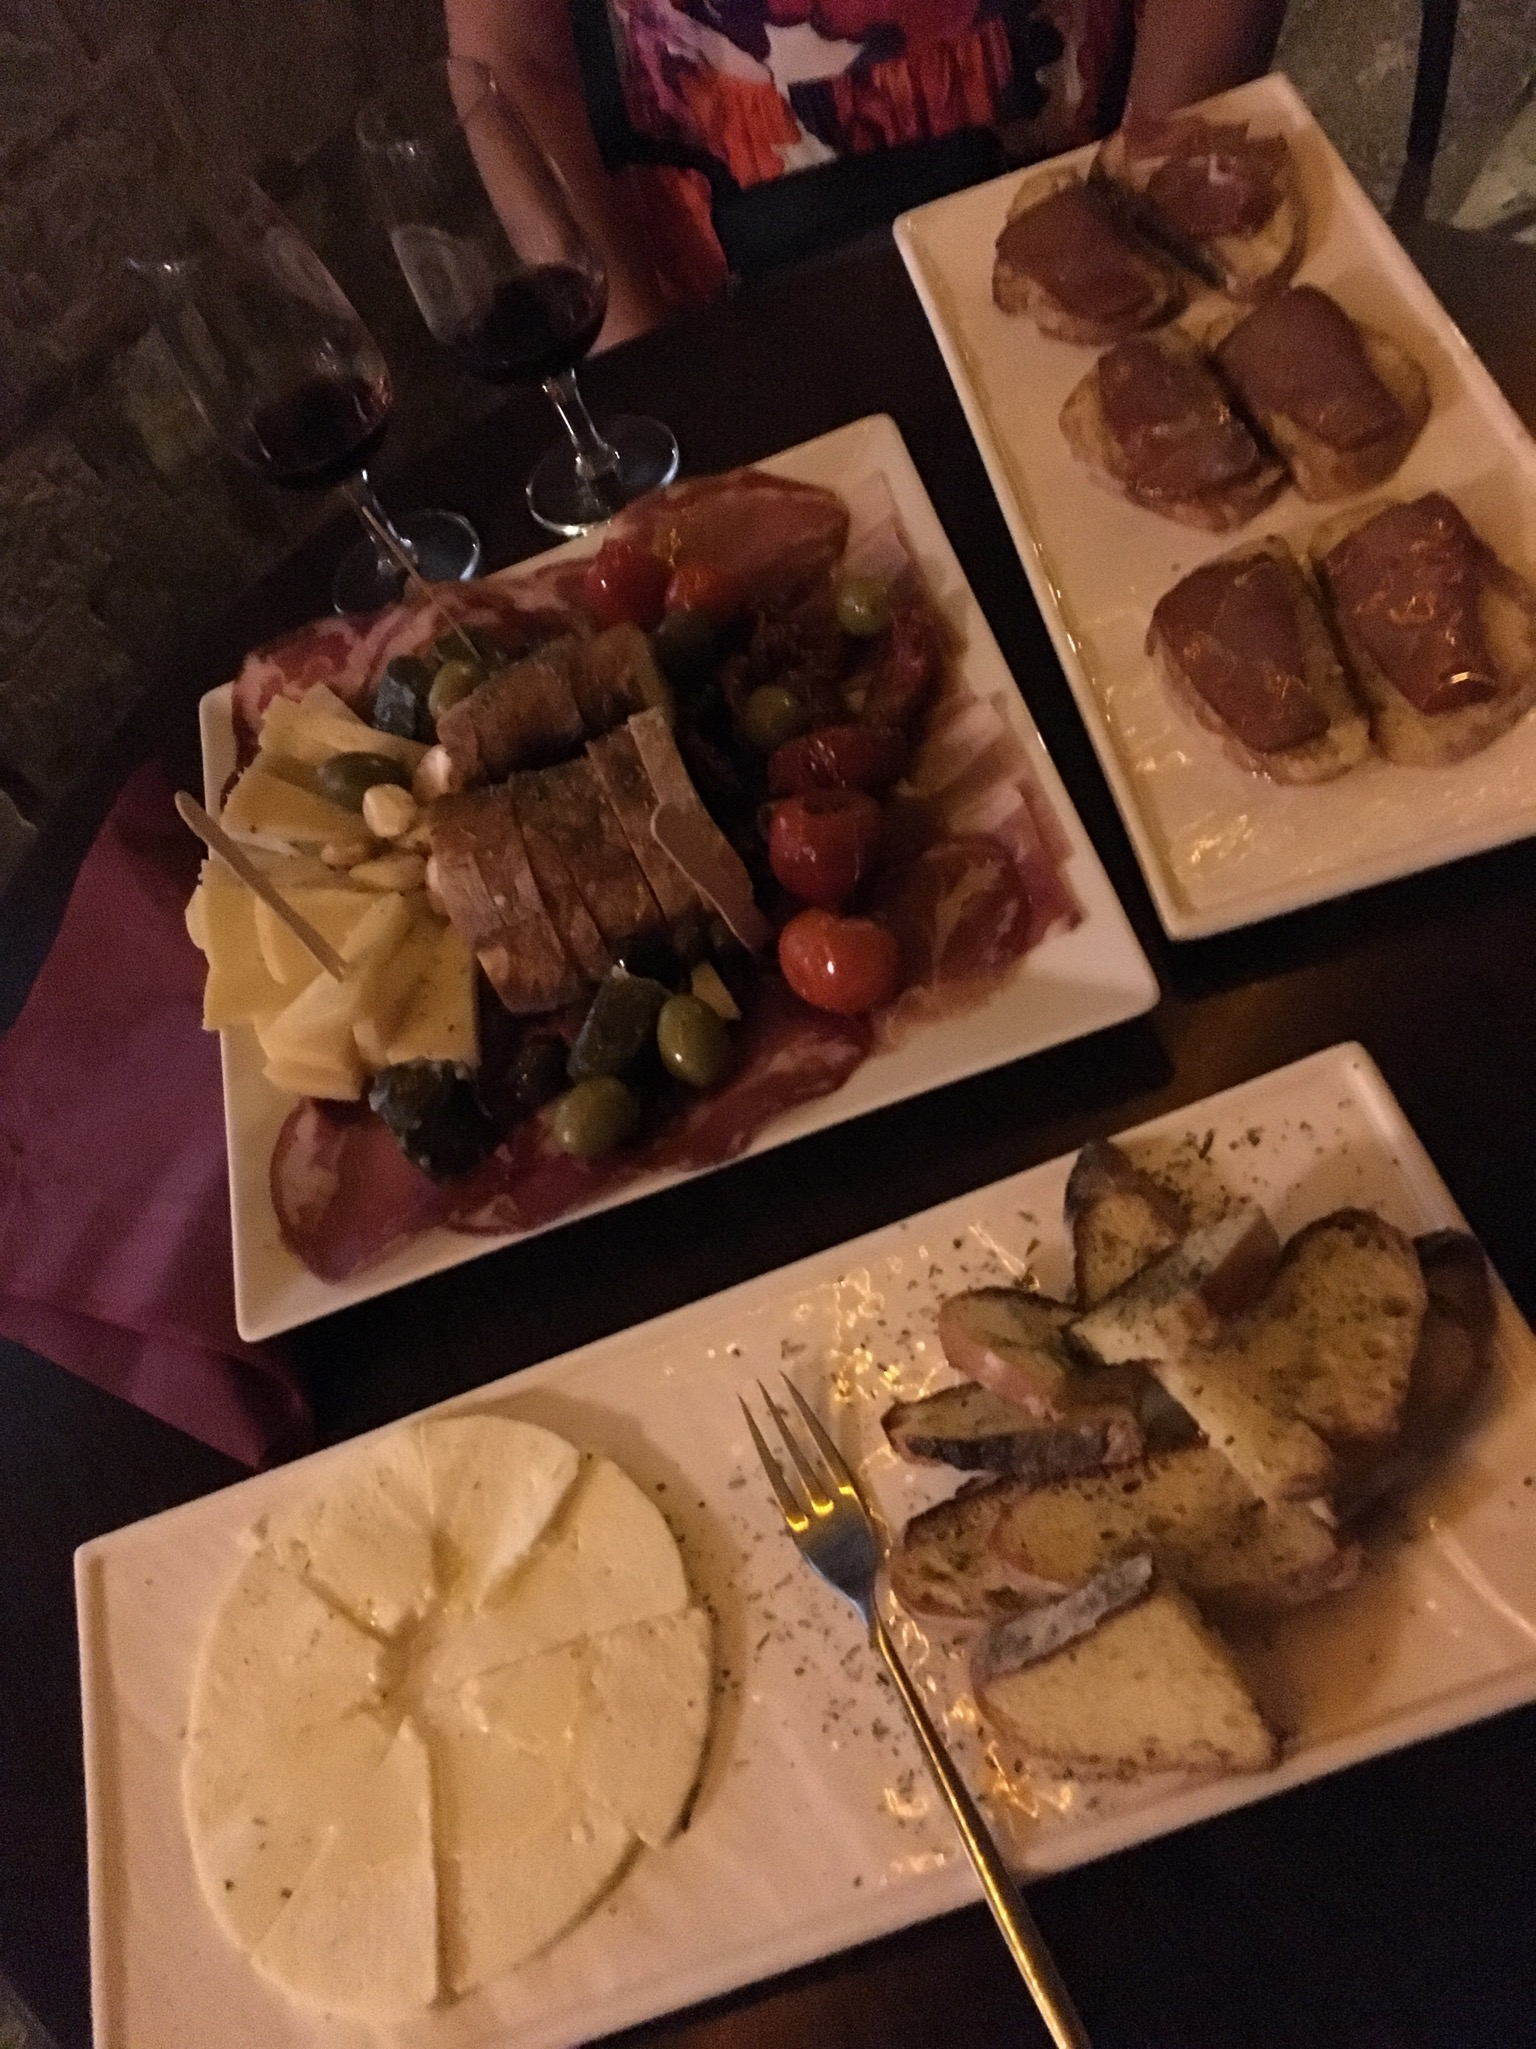 Spread at D'vino